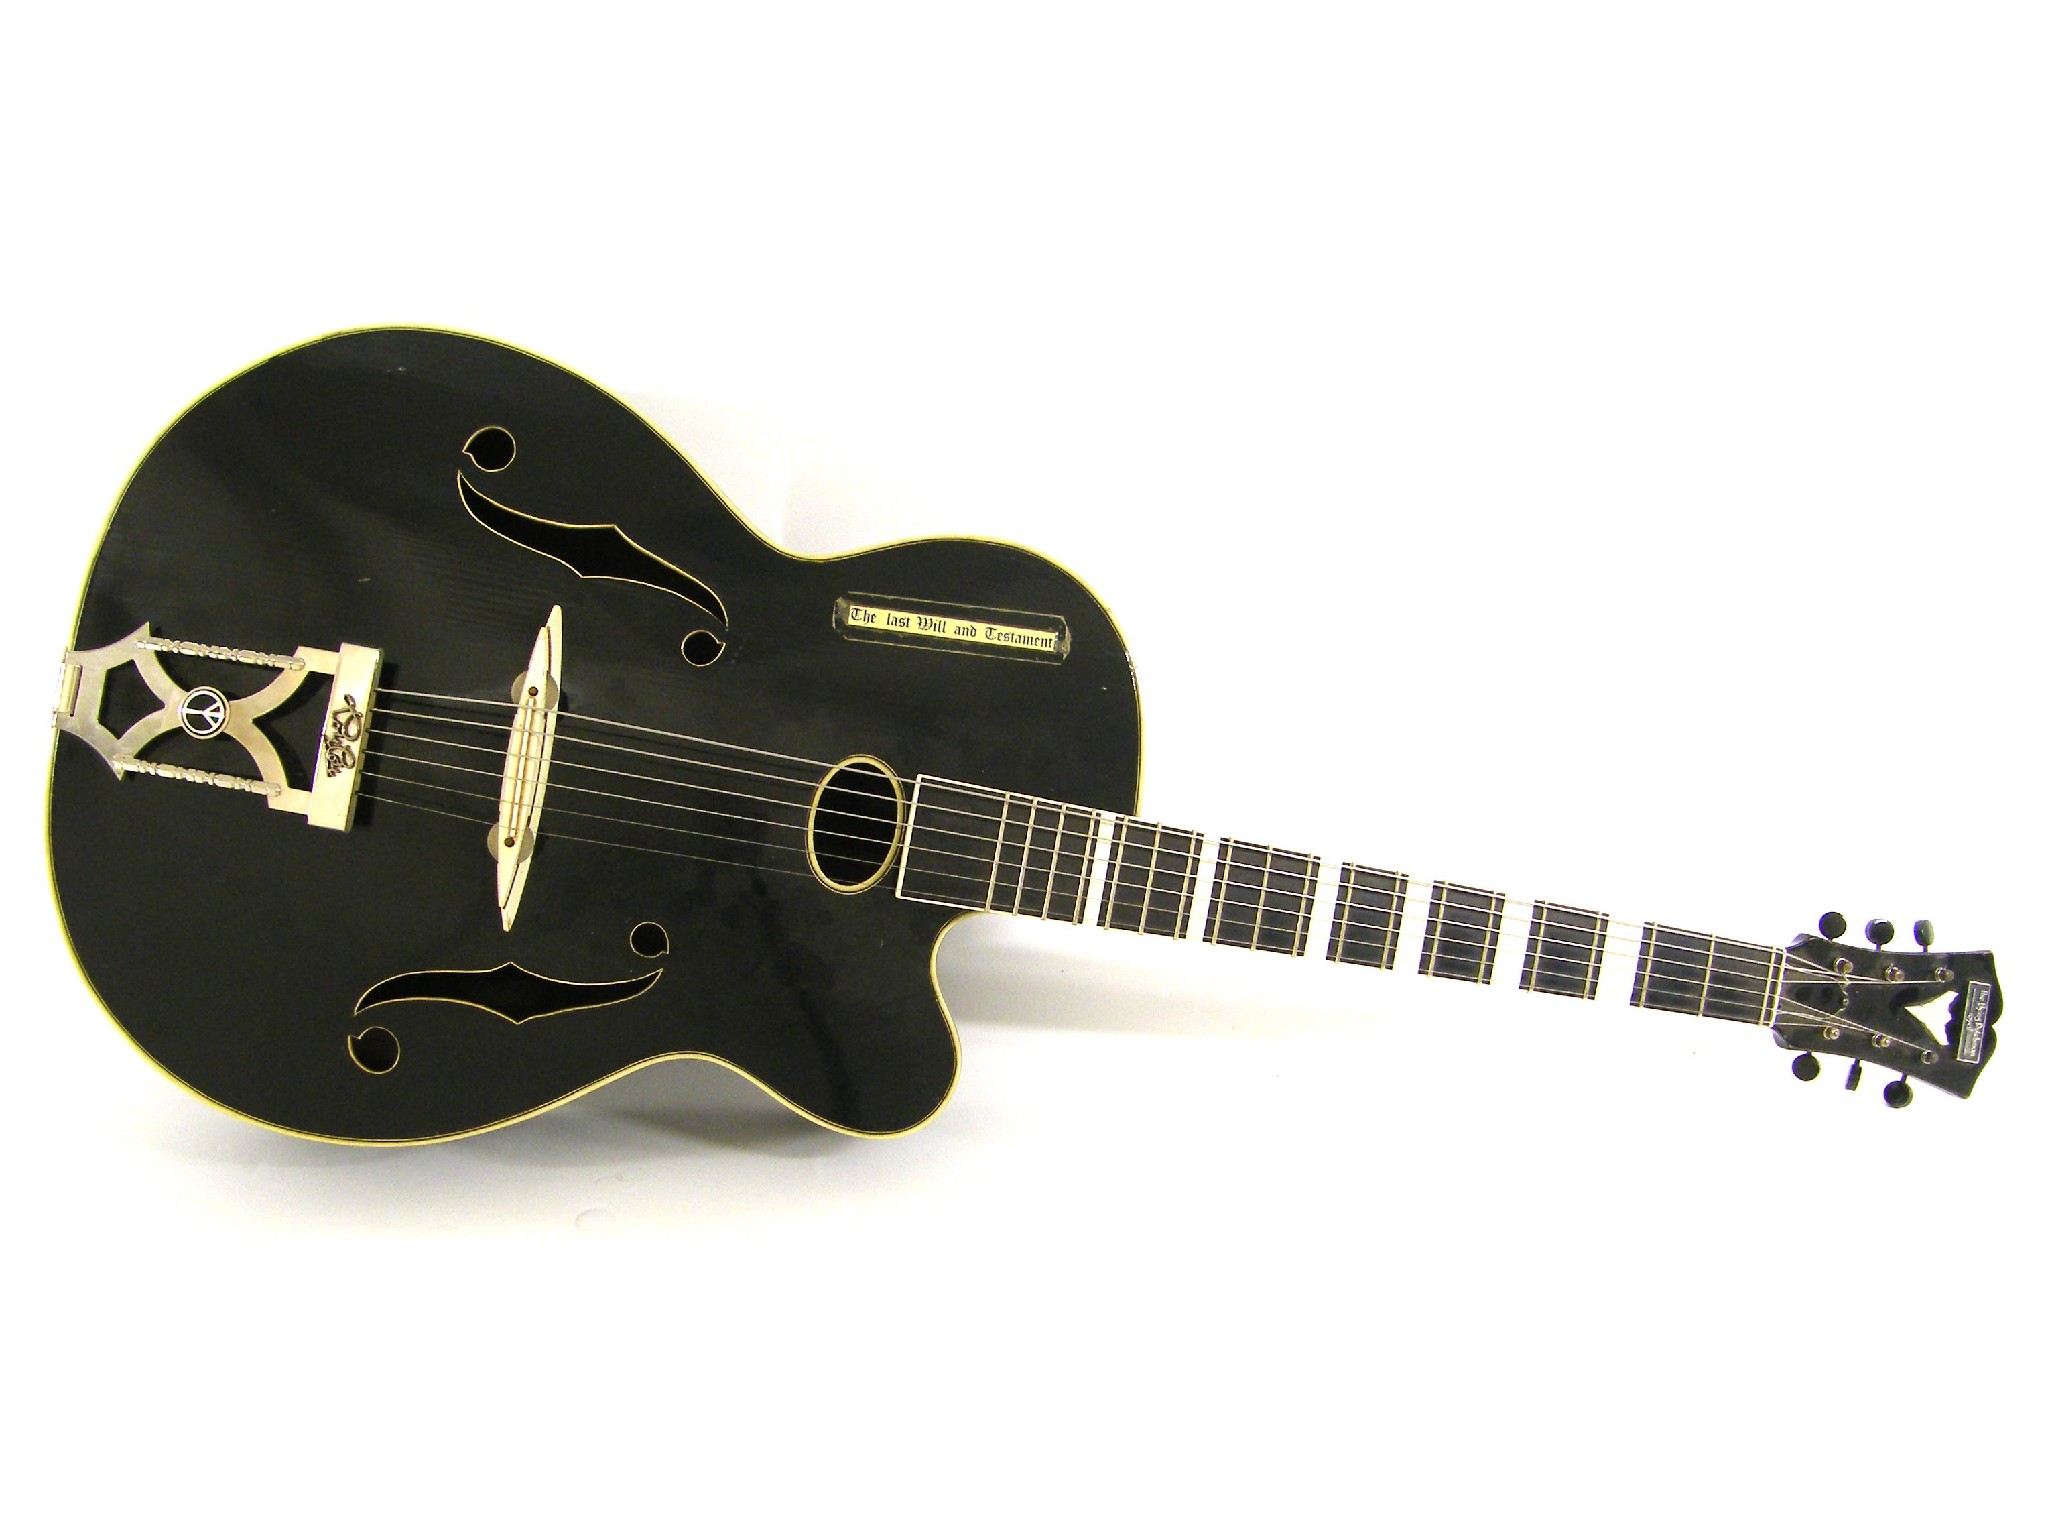 Price guide for Glazbala acoustic archtop guitar, made in